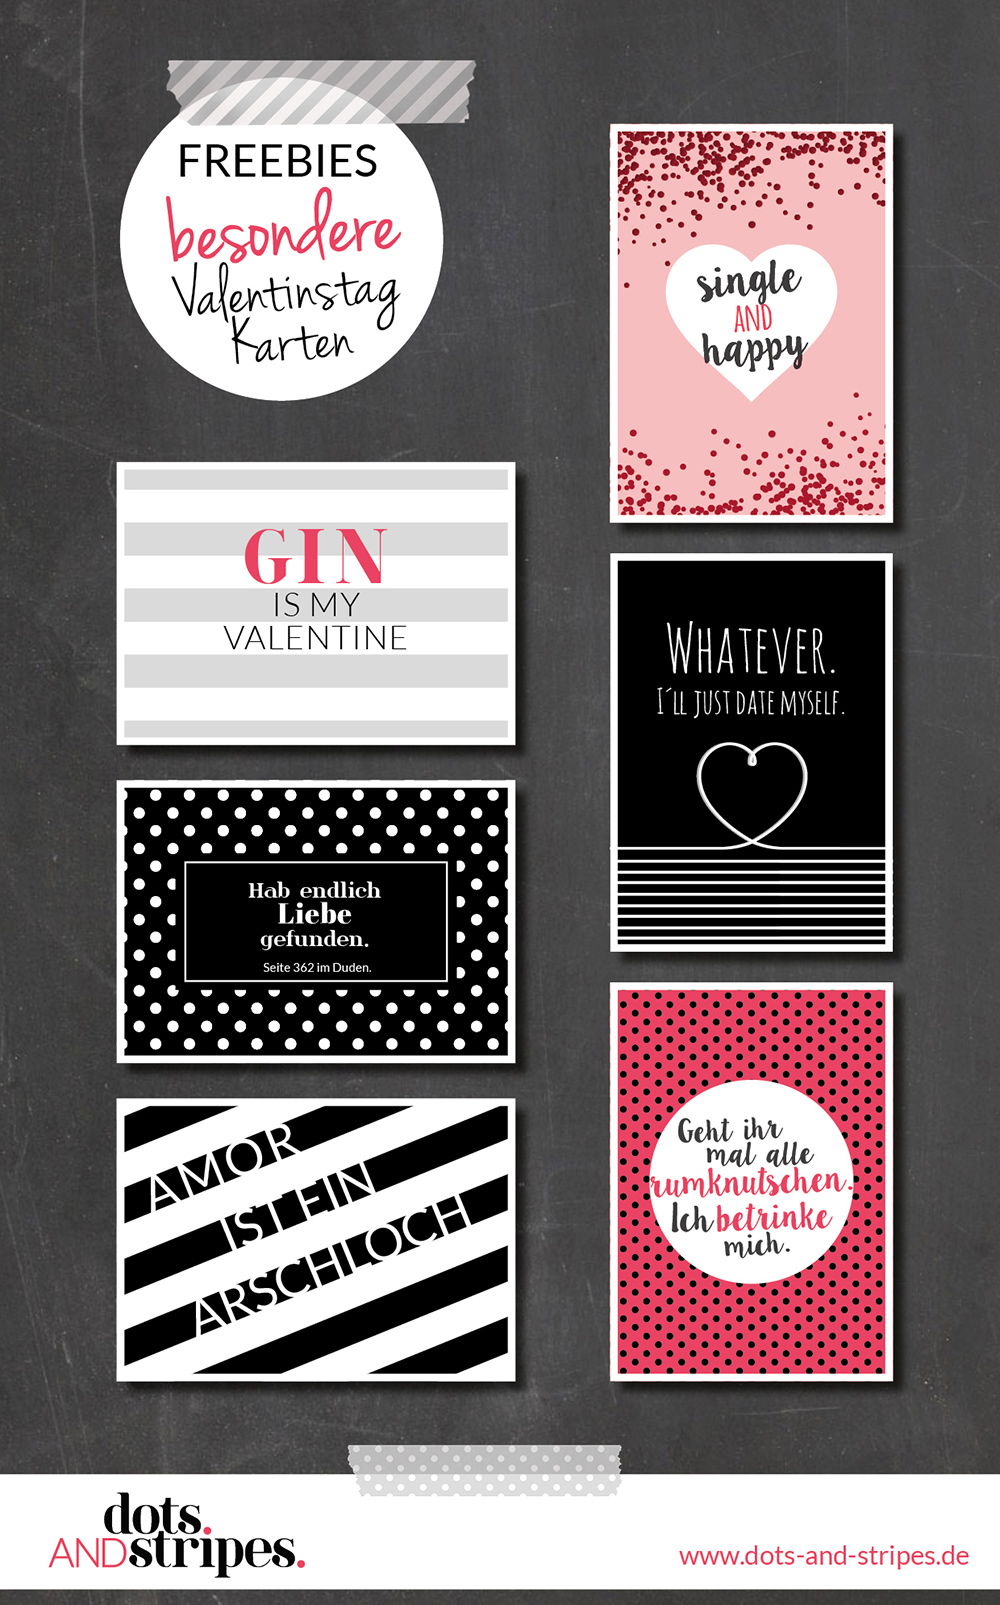 Freebies Valentinstag